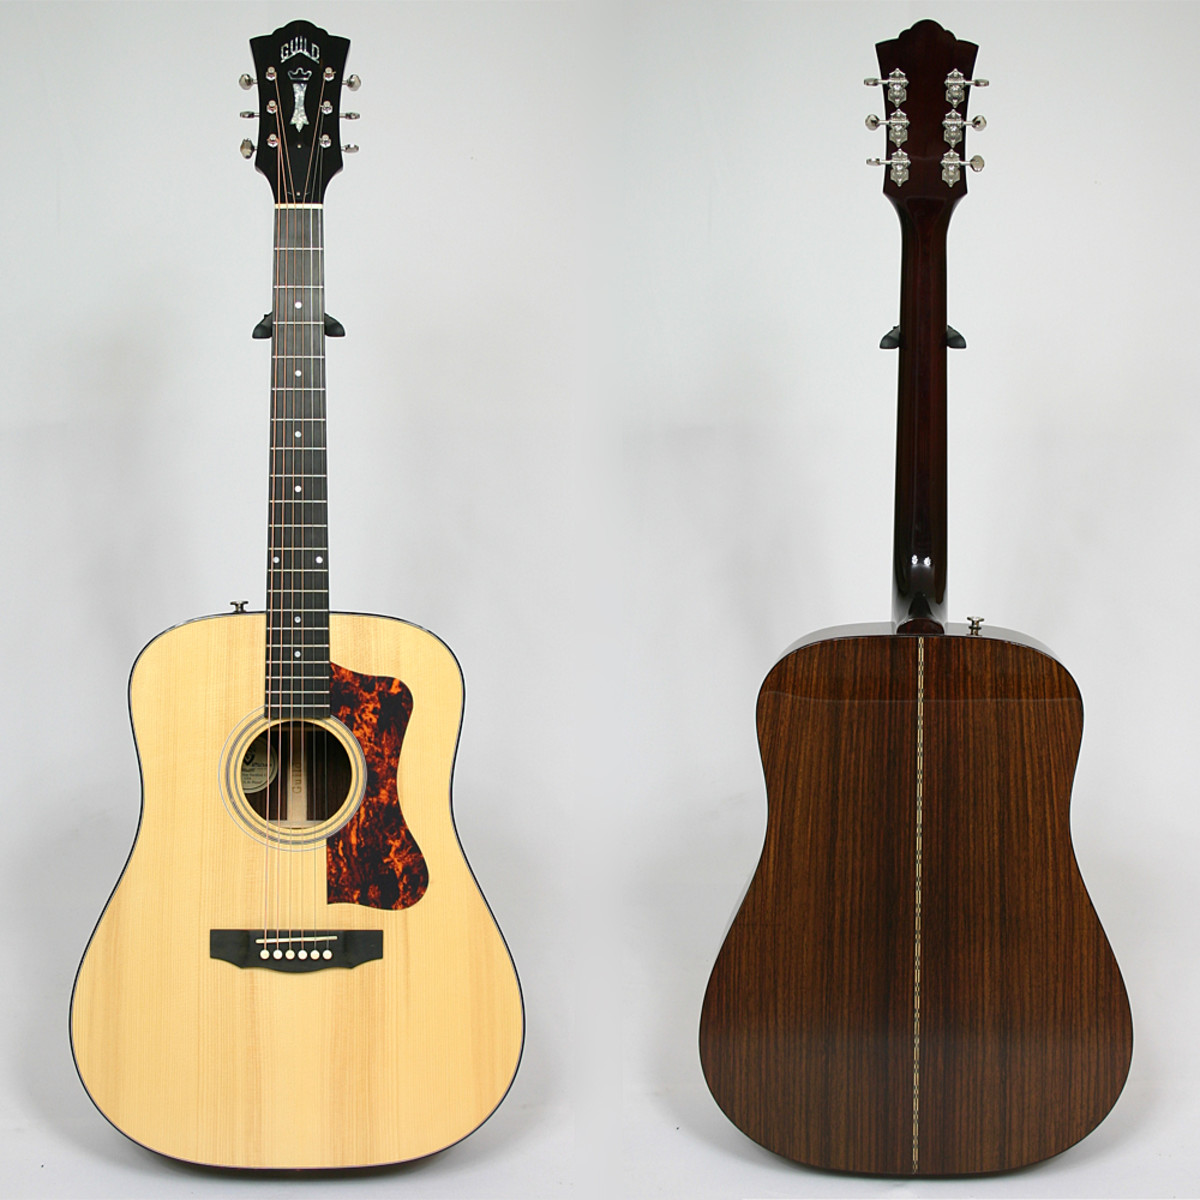 The Guild D-50 Bluegrass Special, front and back.